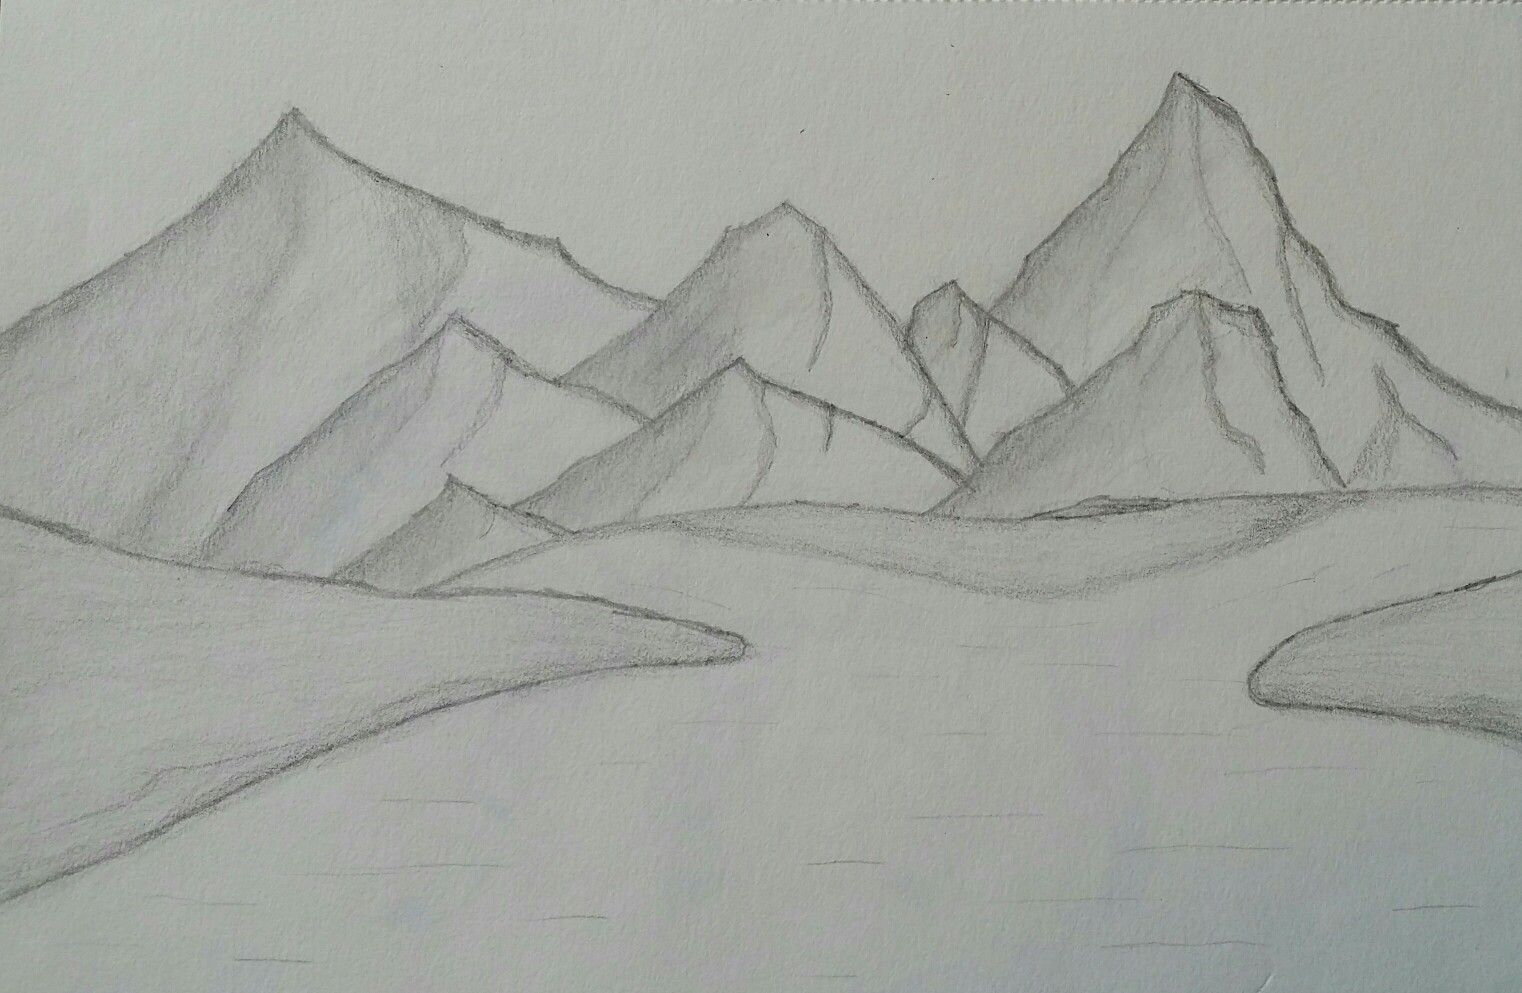 Landscape with hills, mountains and a river